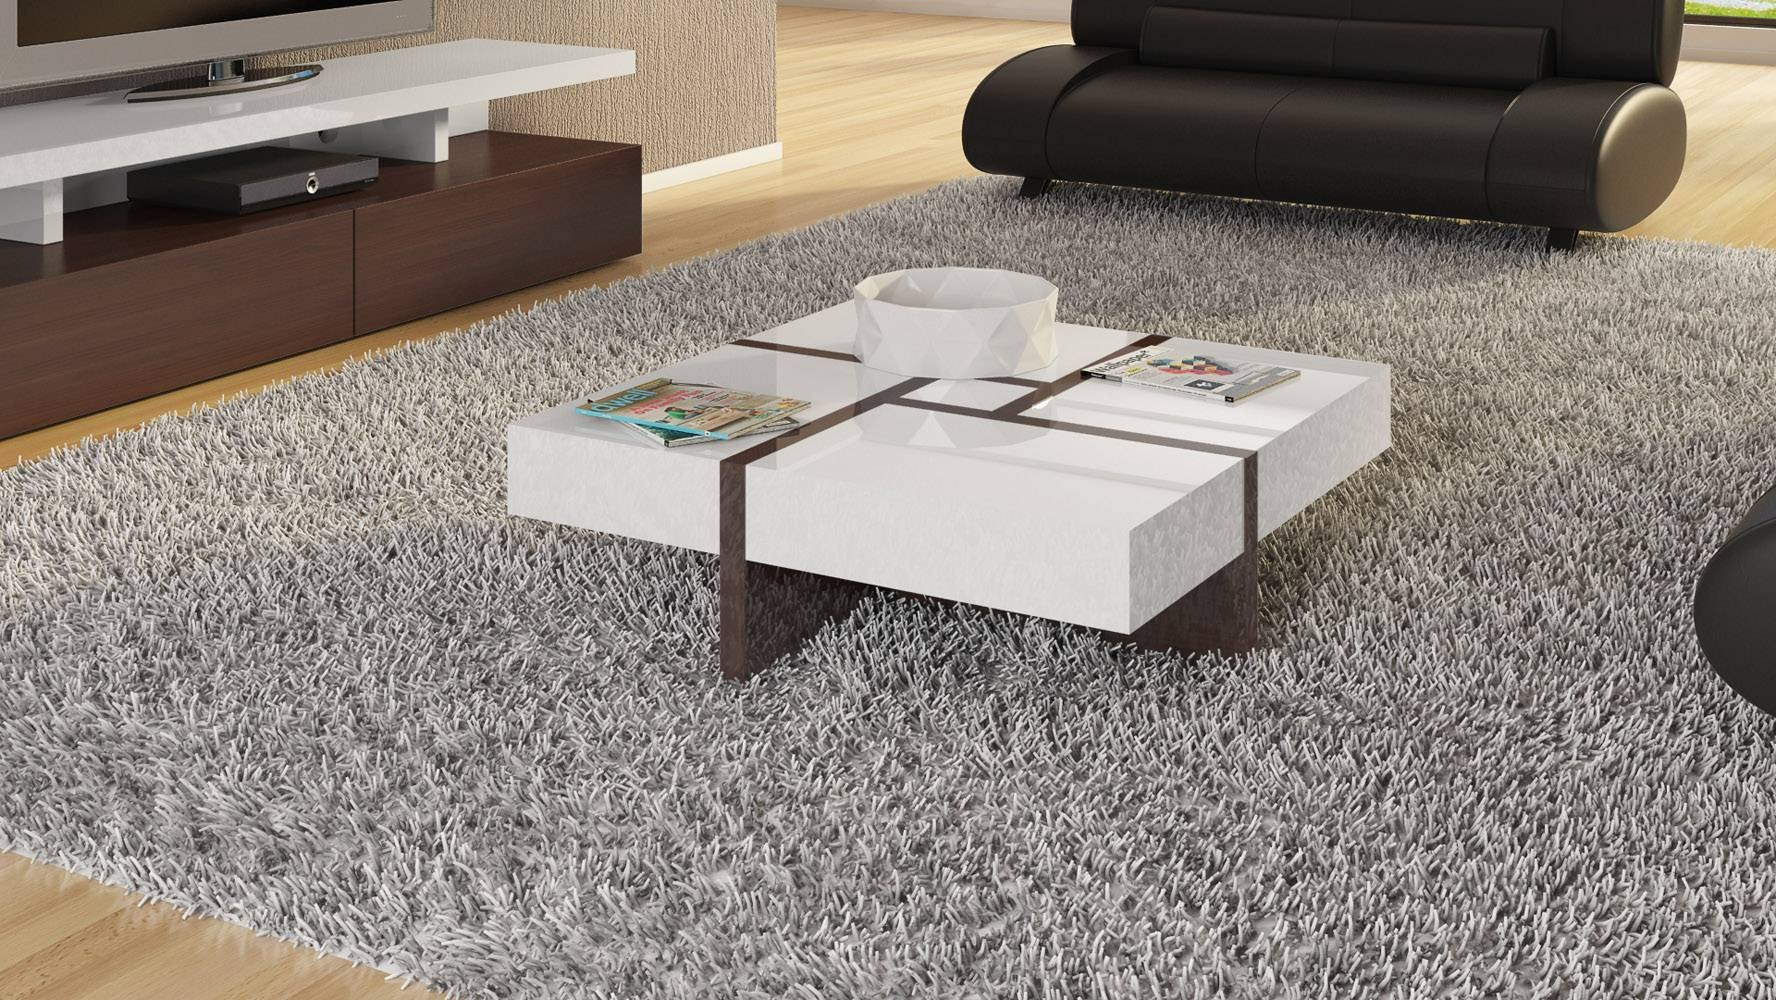 Mcintosh High Gloss Coffee Table With Storage - White Square inside White High Gloss Coffee Tables (Image 20 of 30)